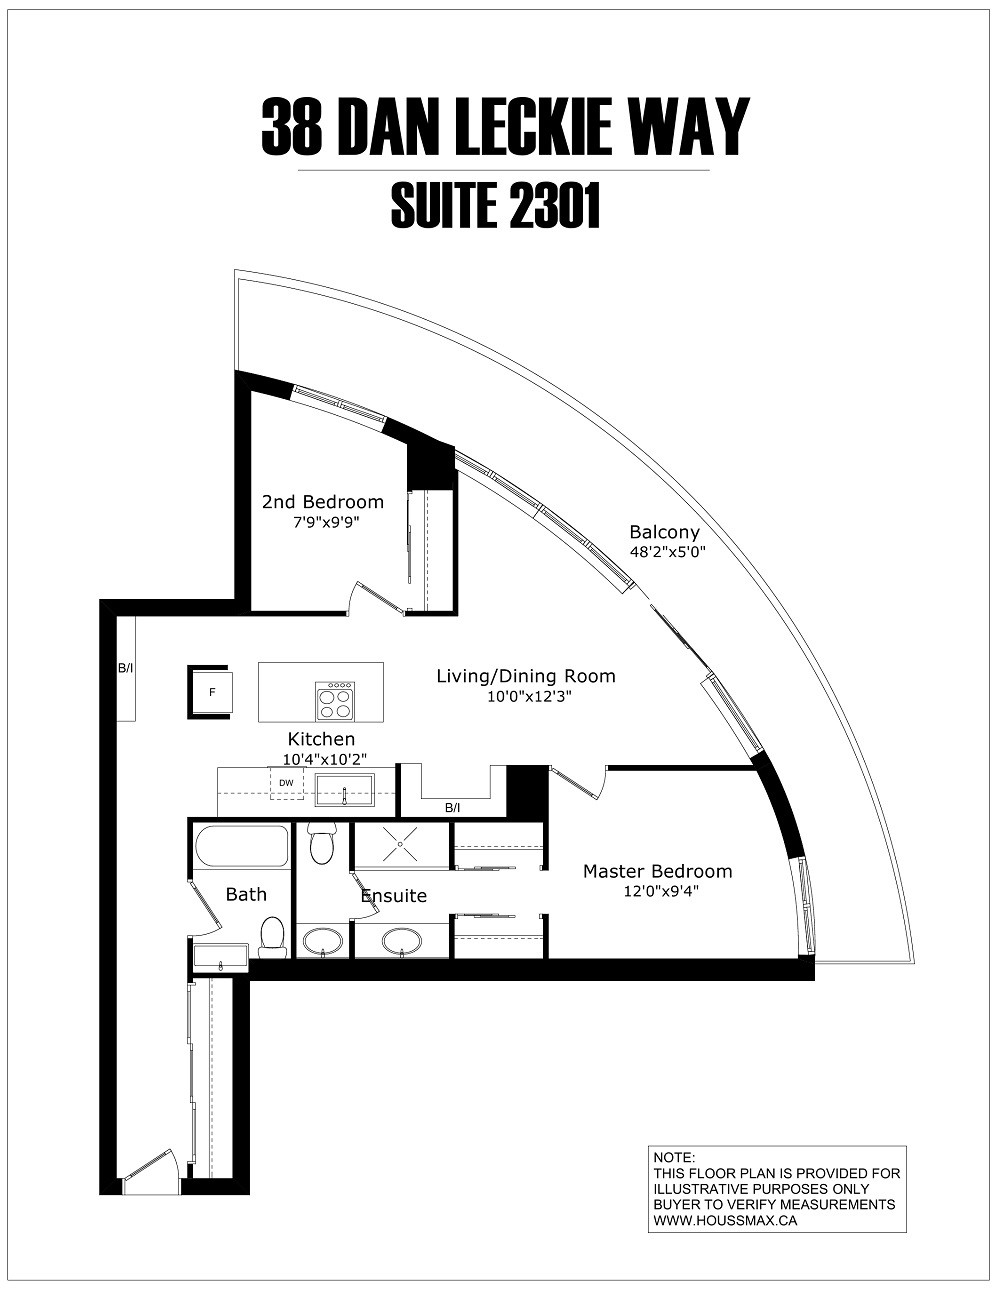 Condo floor plans and layout.